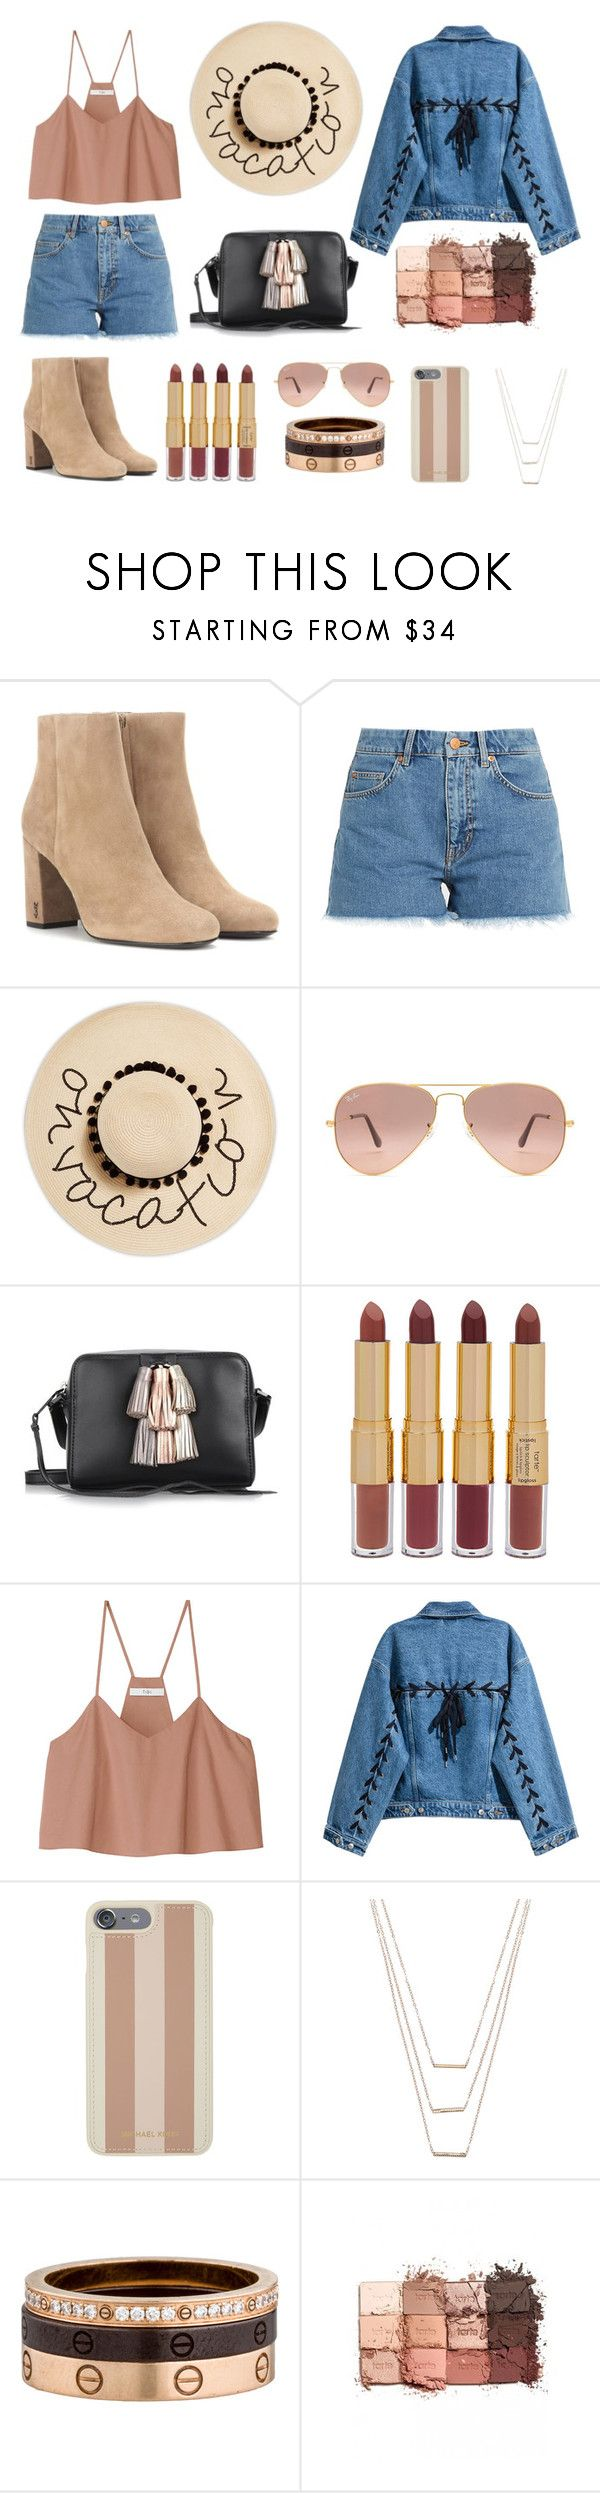 """Untitled #145"" by rhiannonsumner ❤ liked on Polyvore featuring Yves Saint Laurent, M.i.h Jeans, August Hat, Ray-Ban, Rebecca Minkoff, tarte, TIBI, Michael Kors, ERTH and Cartier"